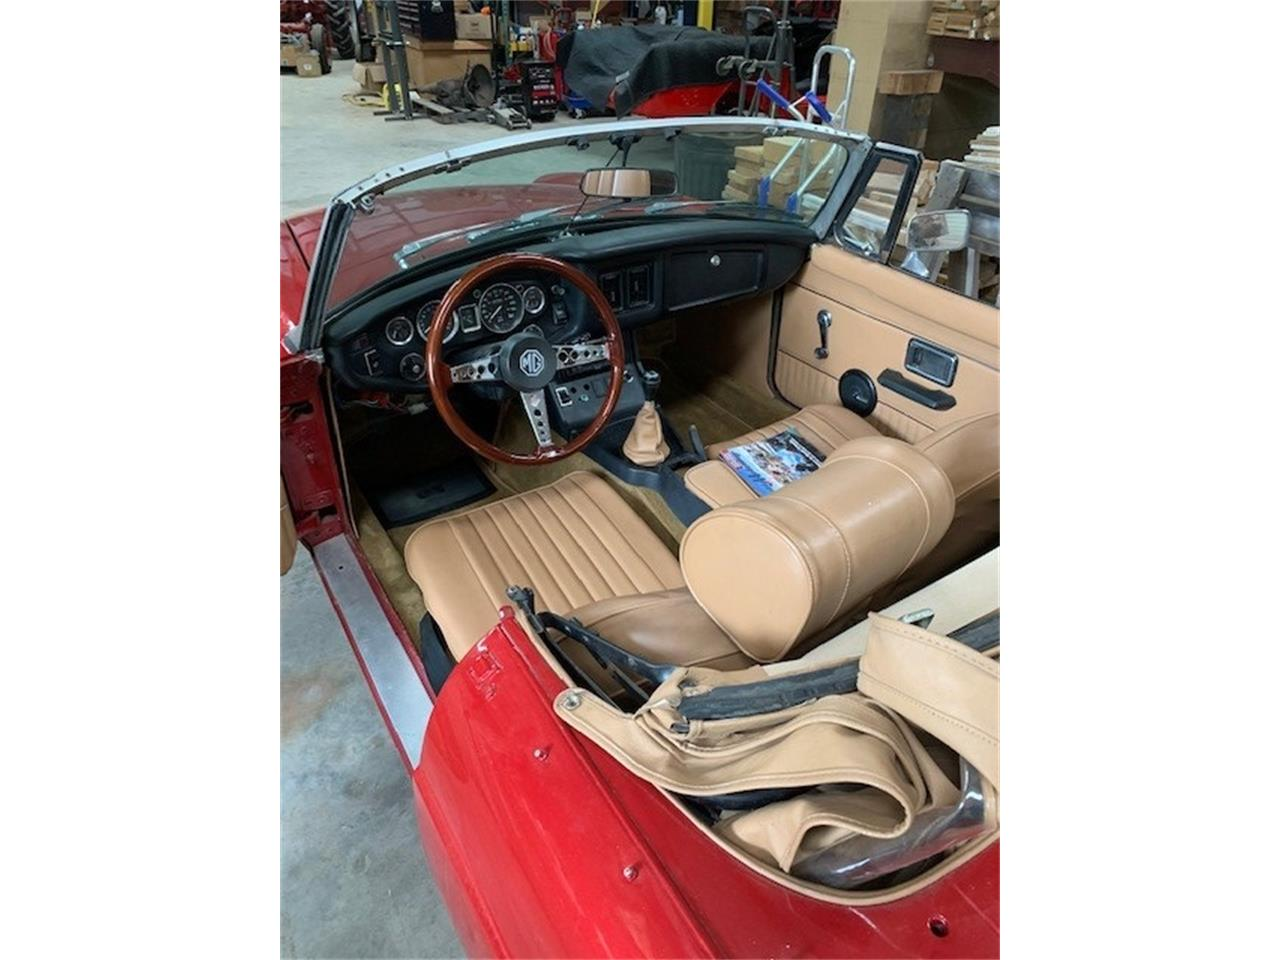 Large Picture of 1975 MG MGB located in Lebanon Tennessee - $12,000.00 Offered by a Private Seller - Q1U3